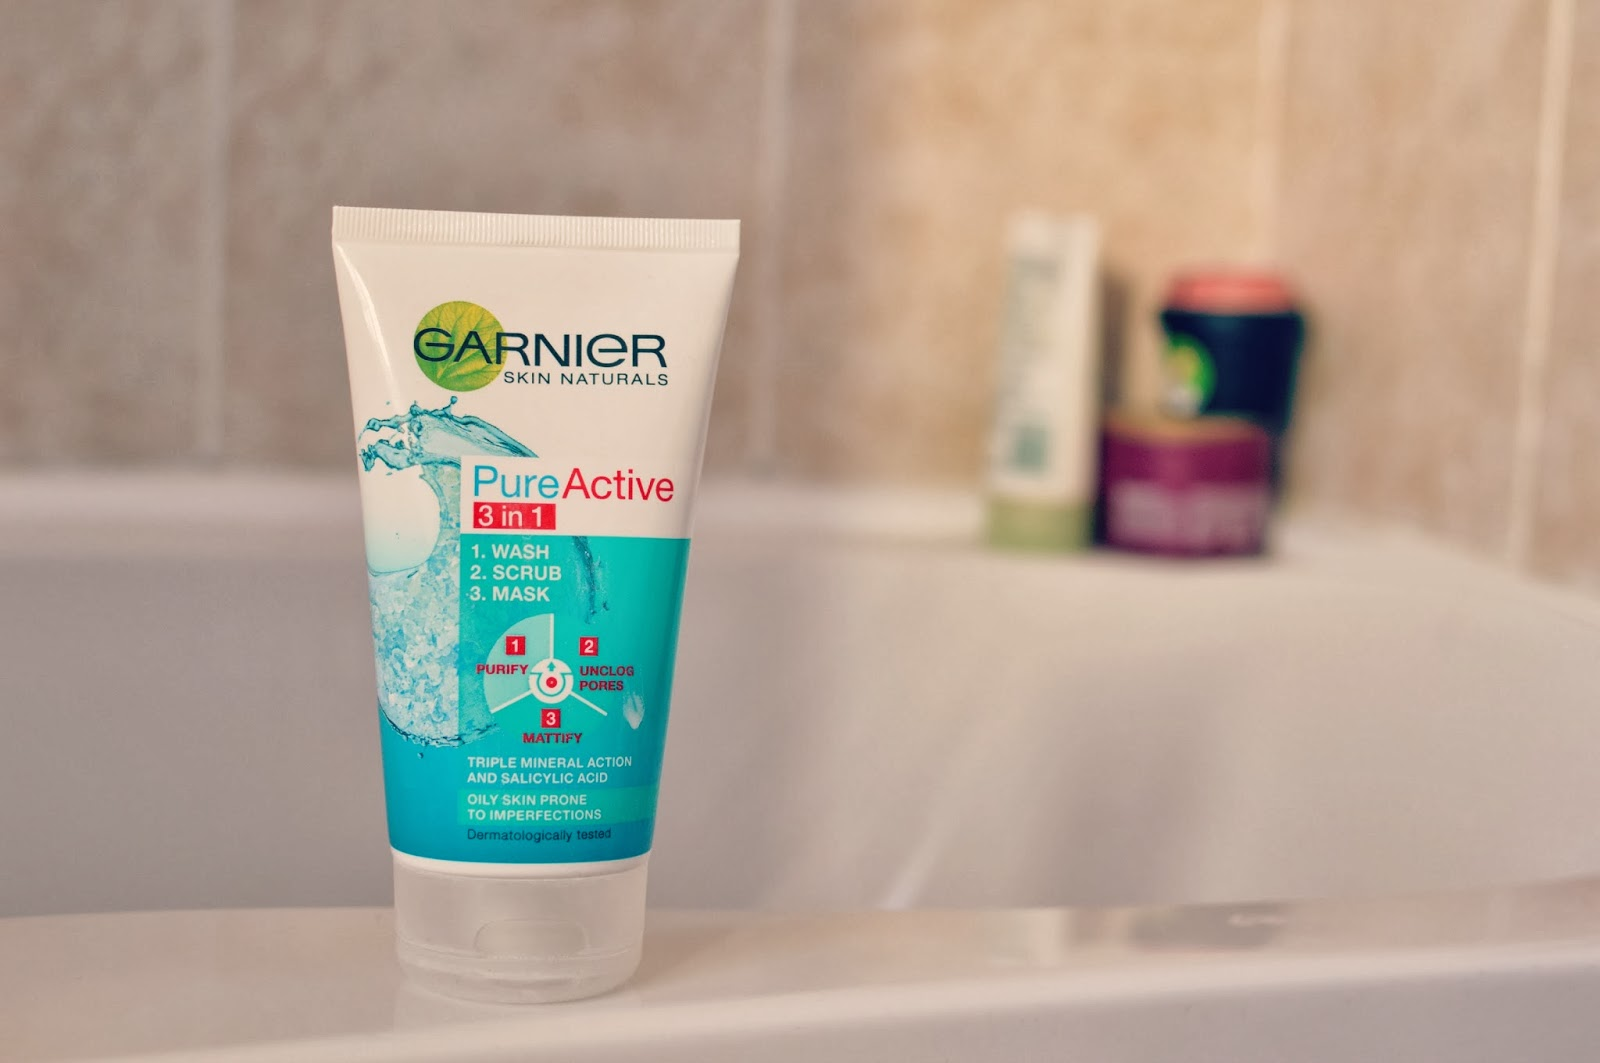 GARNIER PURE ACTIVE 3 IN 1 WASH/SCRUB/MASK #REVIEW #BEAUTY